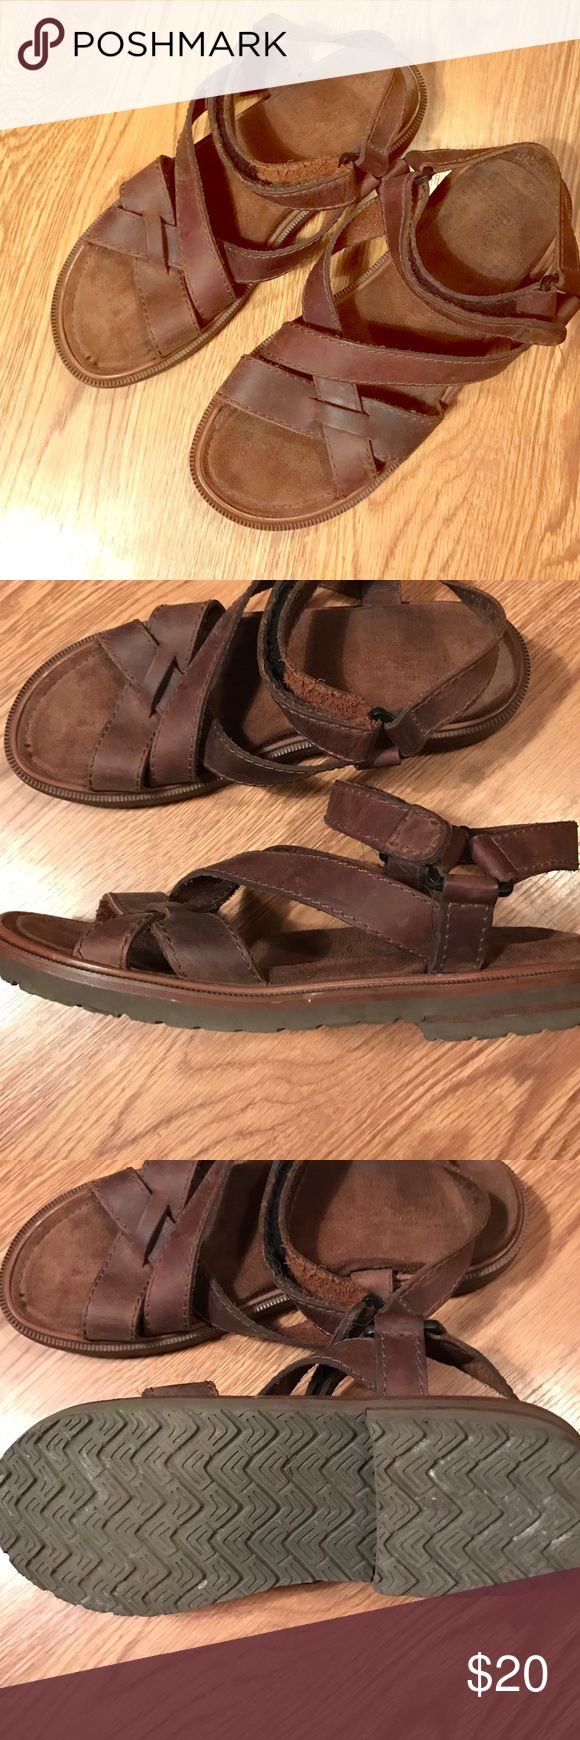 G.h. Bass Jesus sandals 11 1/2 men's These are MENS size 11 1/2 in Good used condition leather sandals. Bass Shoes Sandals